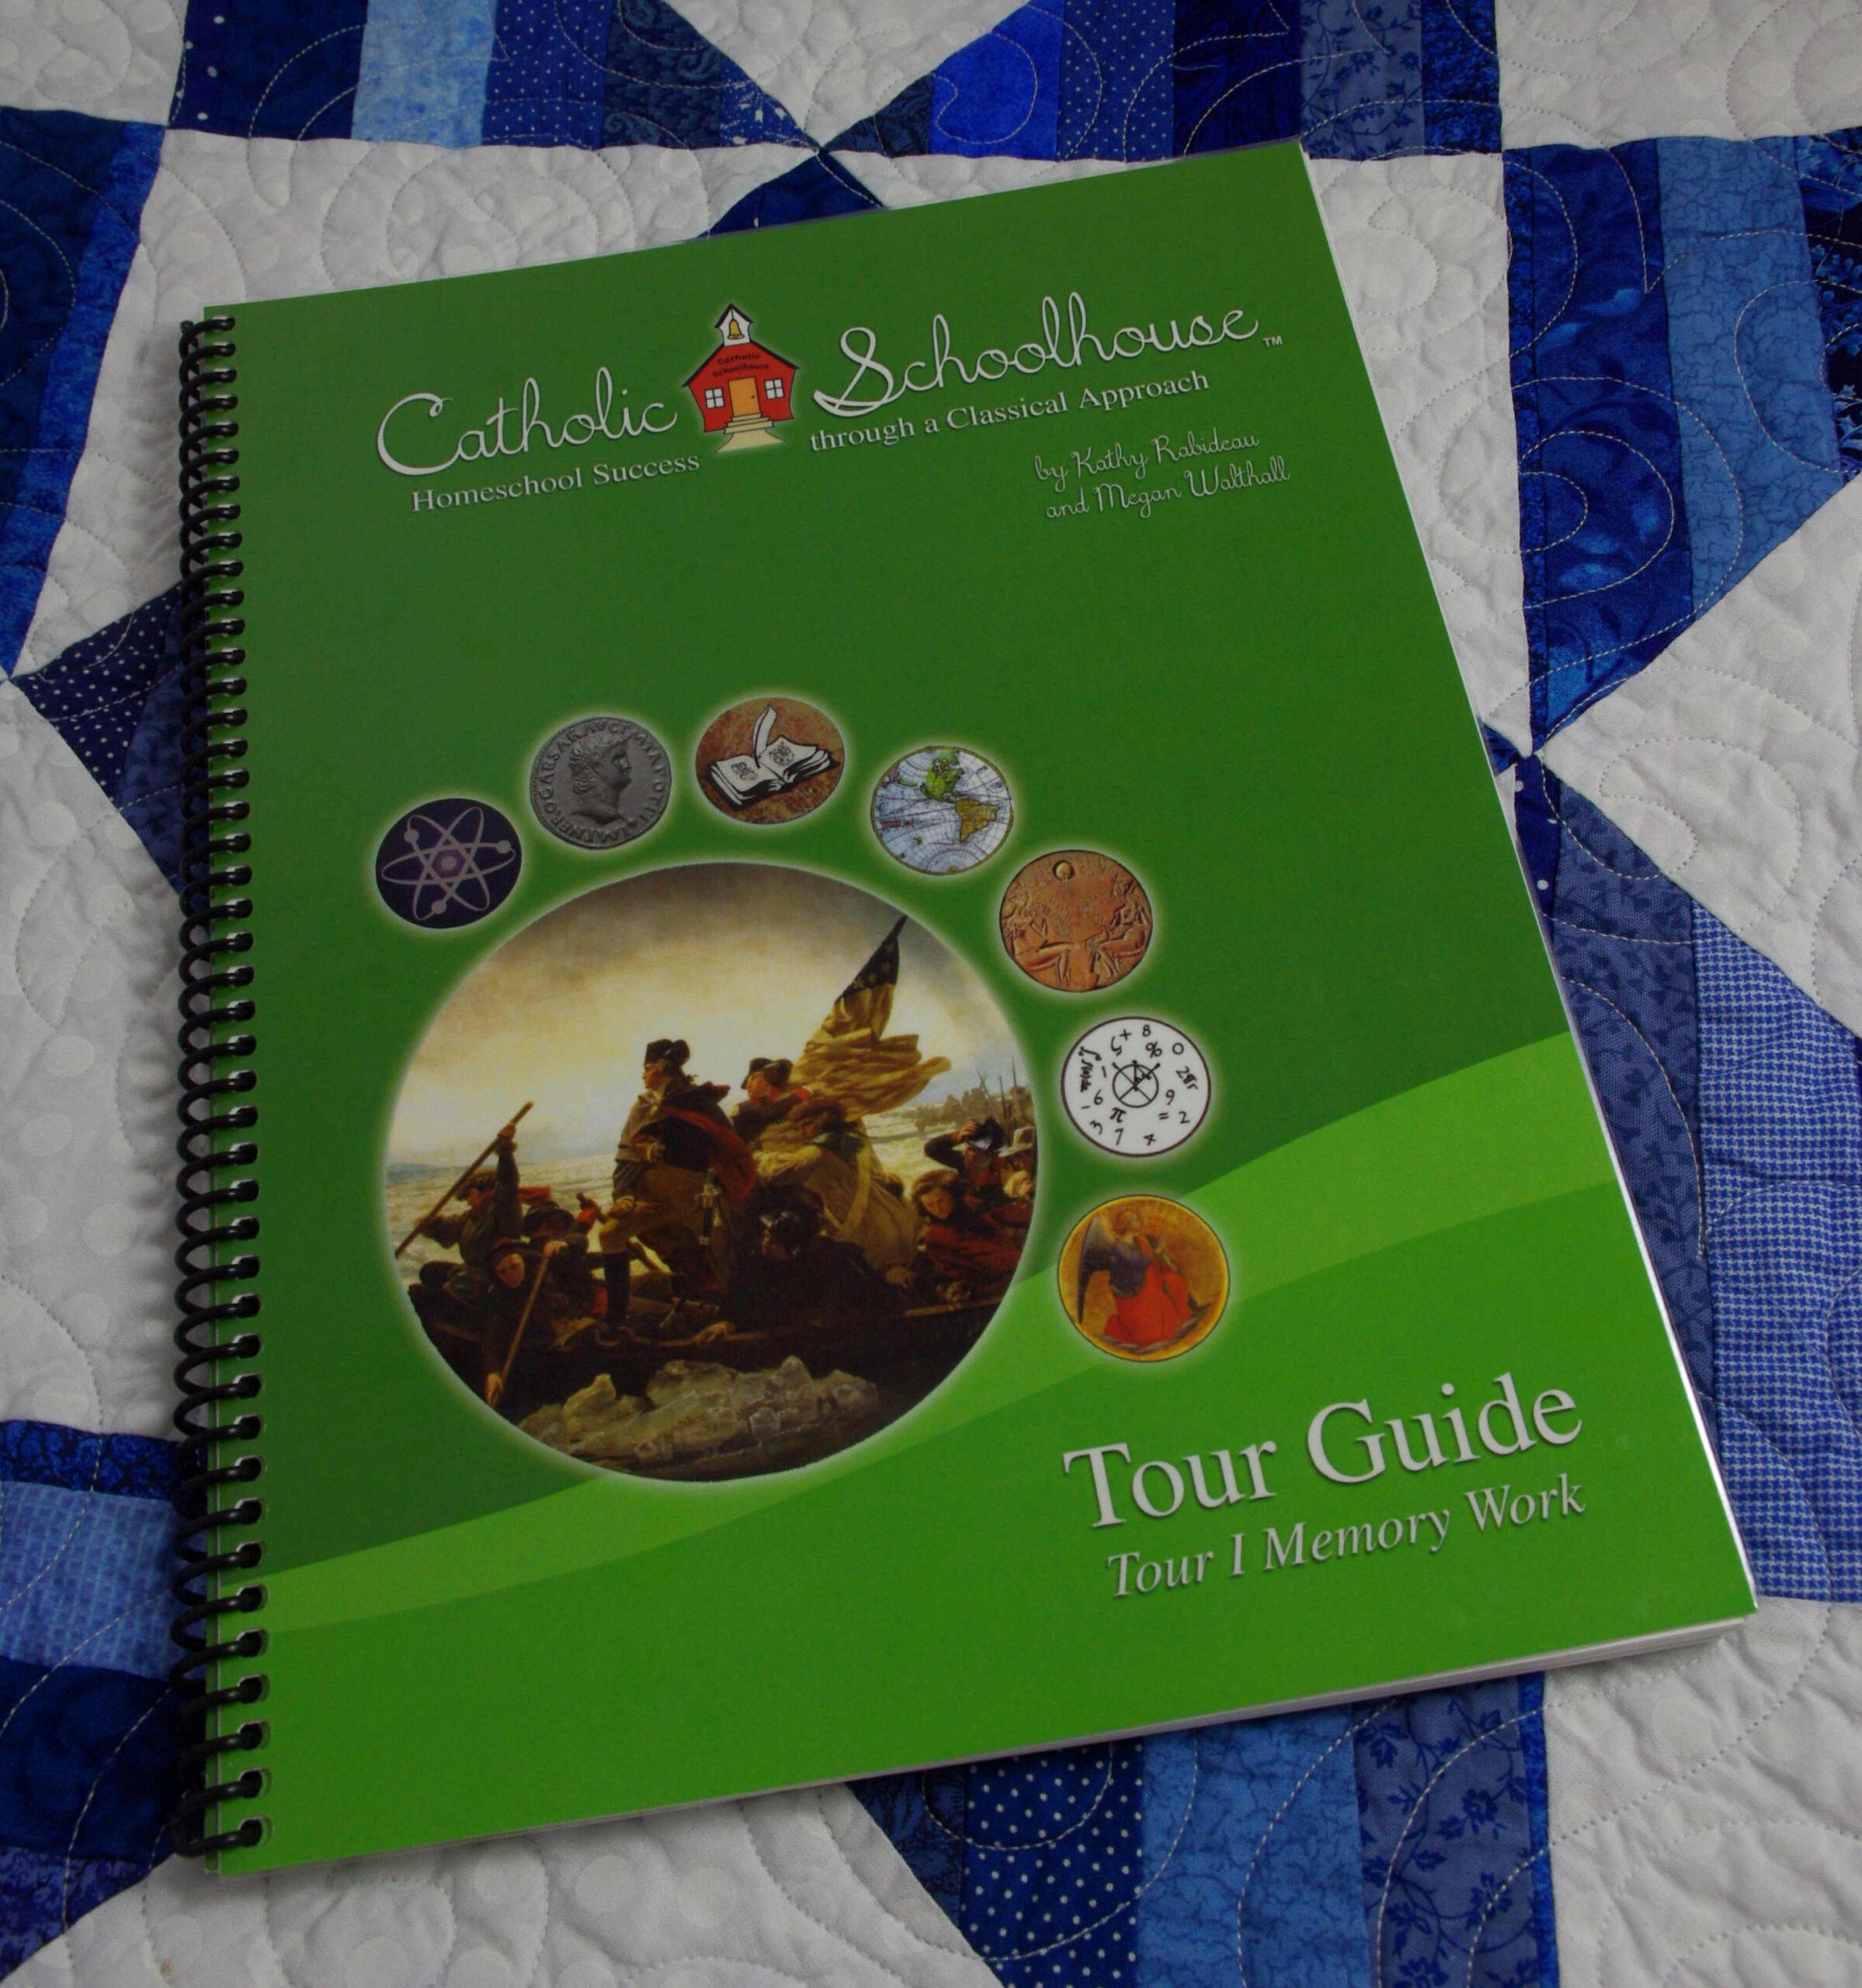 10 Reasons to ~LOVE~ the Catholic Schoolhouse Tour Guide